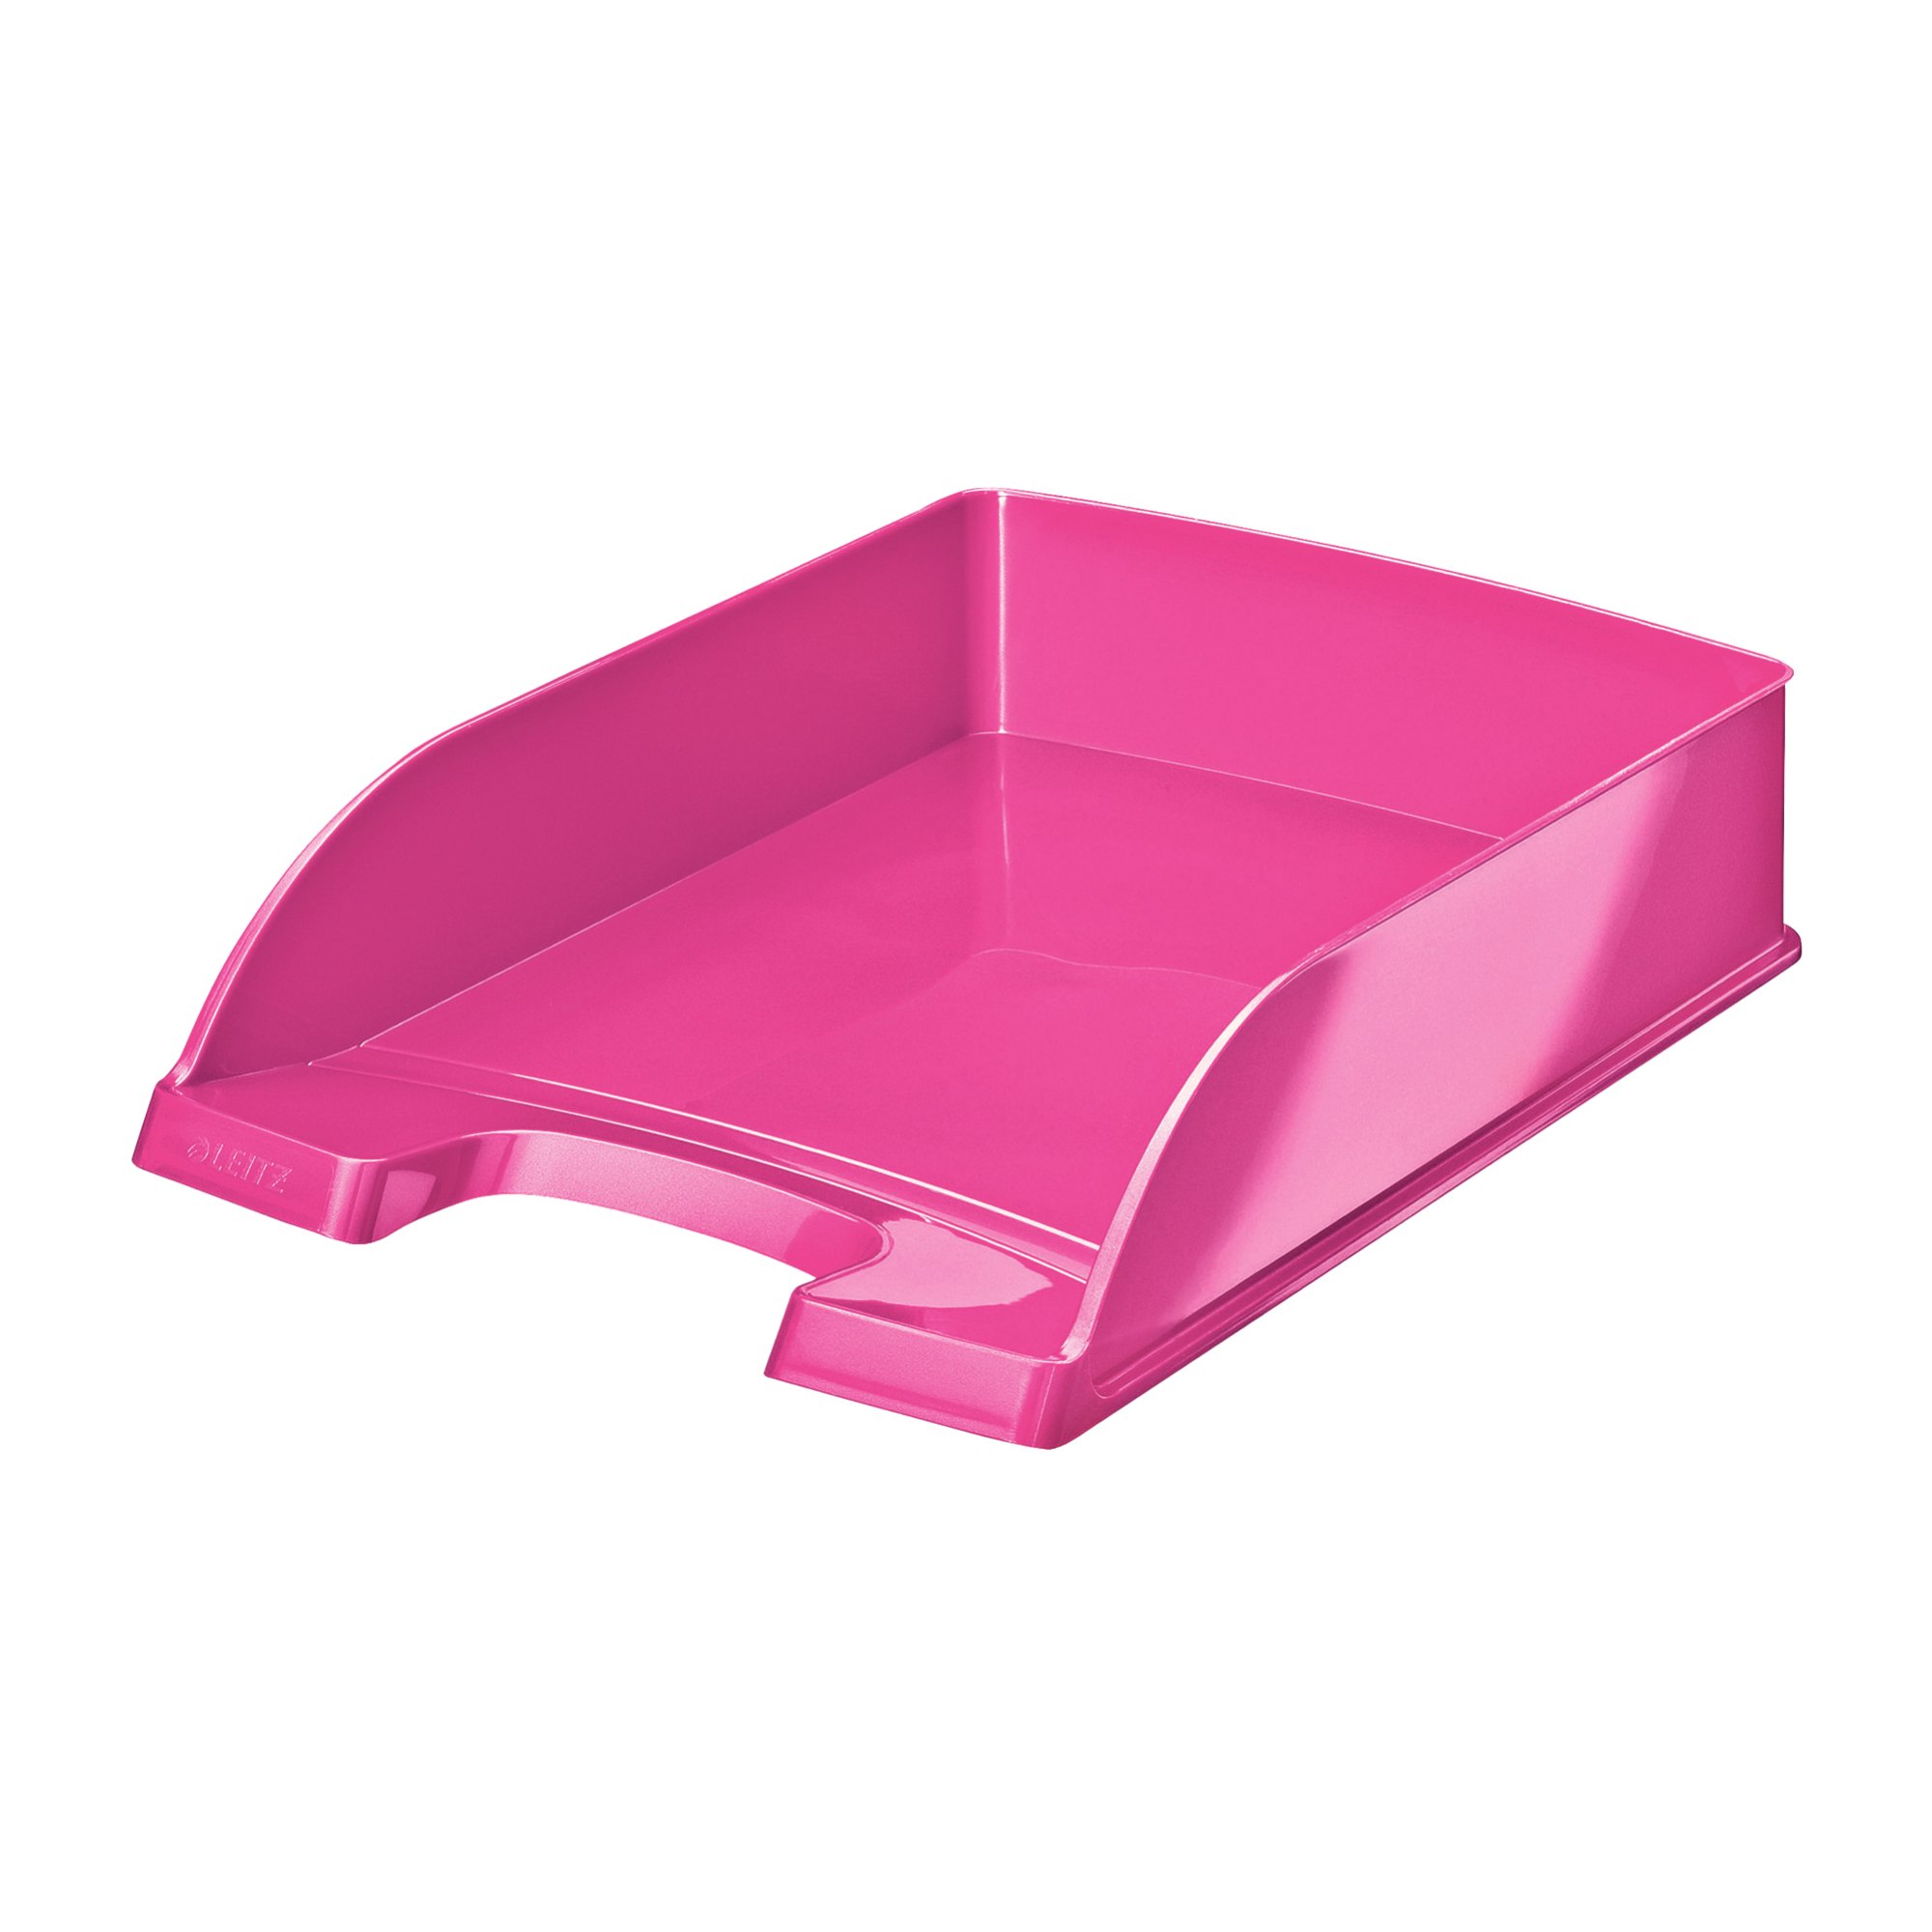 Letter Trays Leitz WOW Letter Tray Stackable Glossy Metallic W245xD380xH70mm Met Pink Ref 52263023